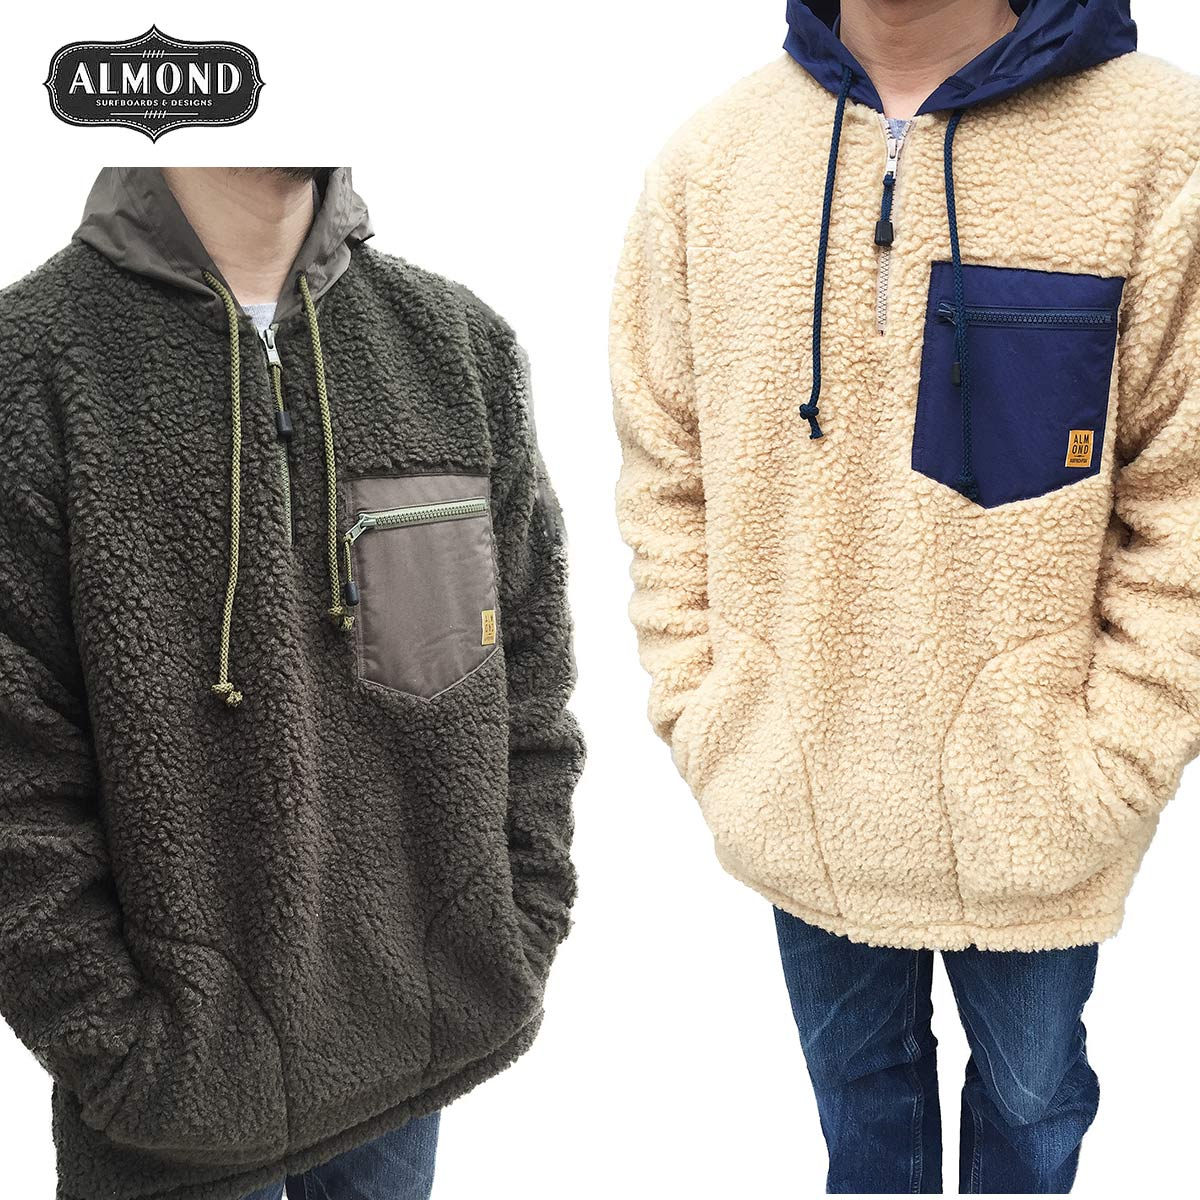 Almond Surfboards & Design ボアフリースプルオーバー ALMOND BOA JACKET